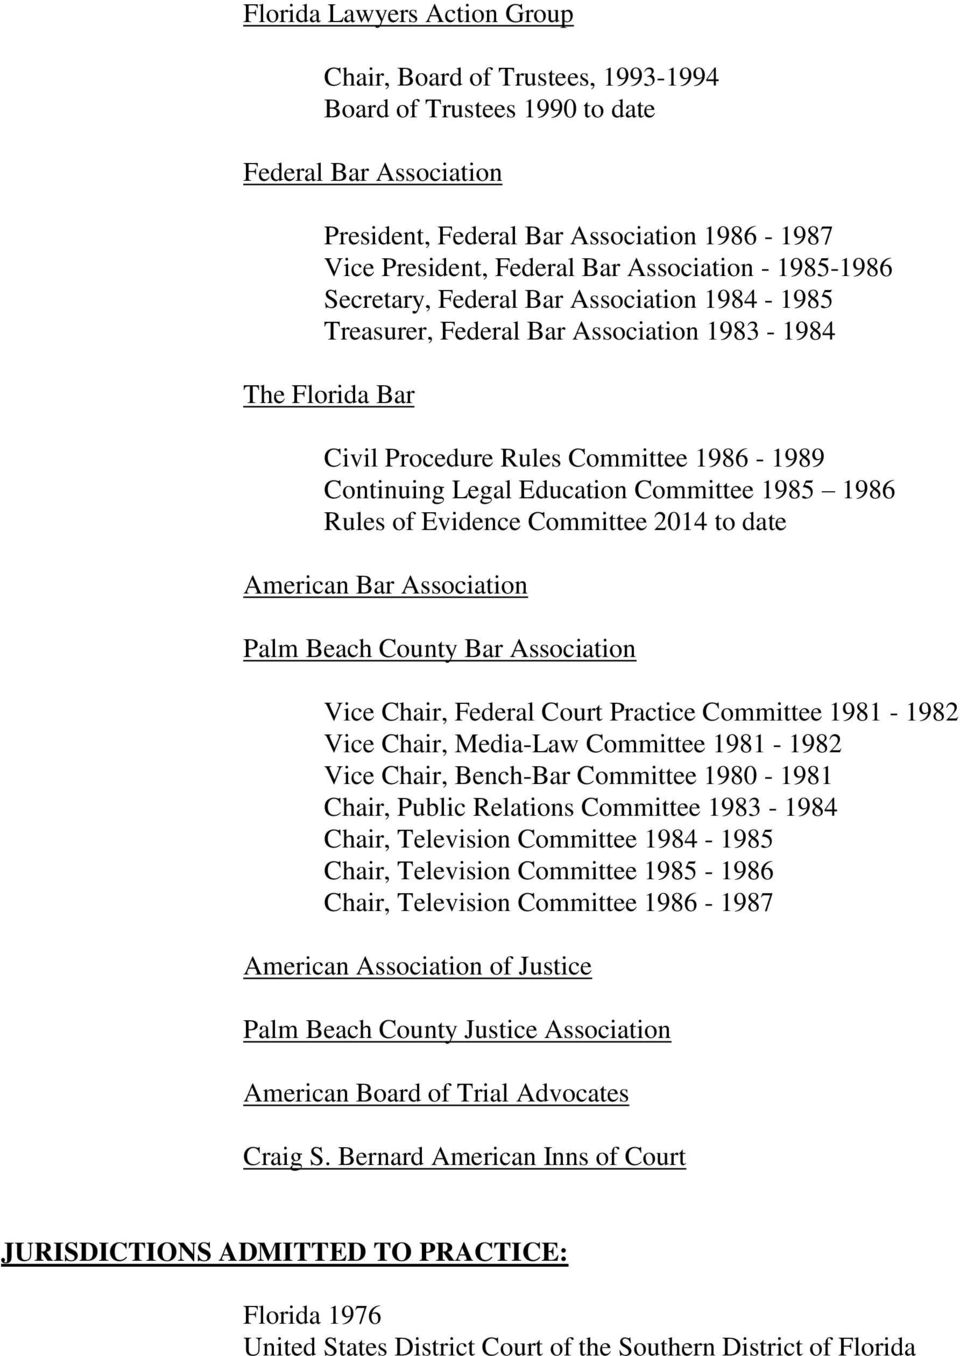 Committee 1985 1986 Rules of Evidence Committee 2014 to date American Bar Association Palm Beach County Bar Association Vice Chair, Federal Court Practice Committee 1981-1982 Vice Chair, Media-Law